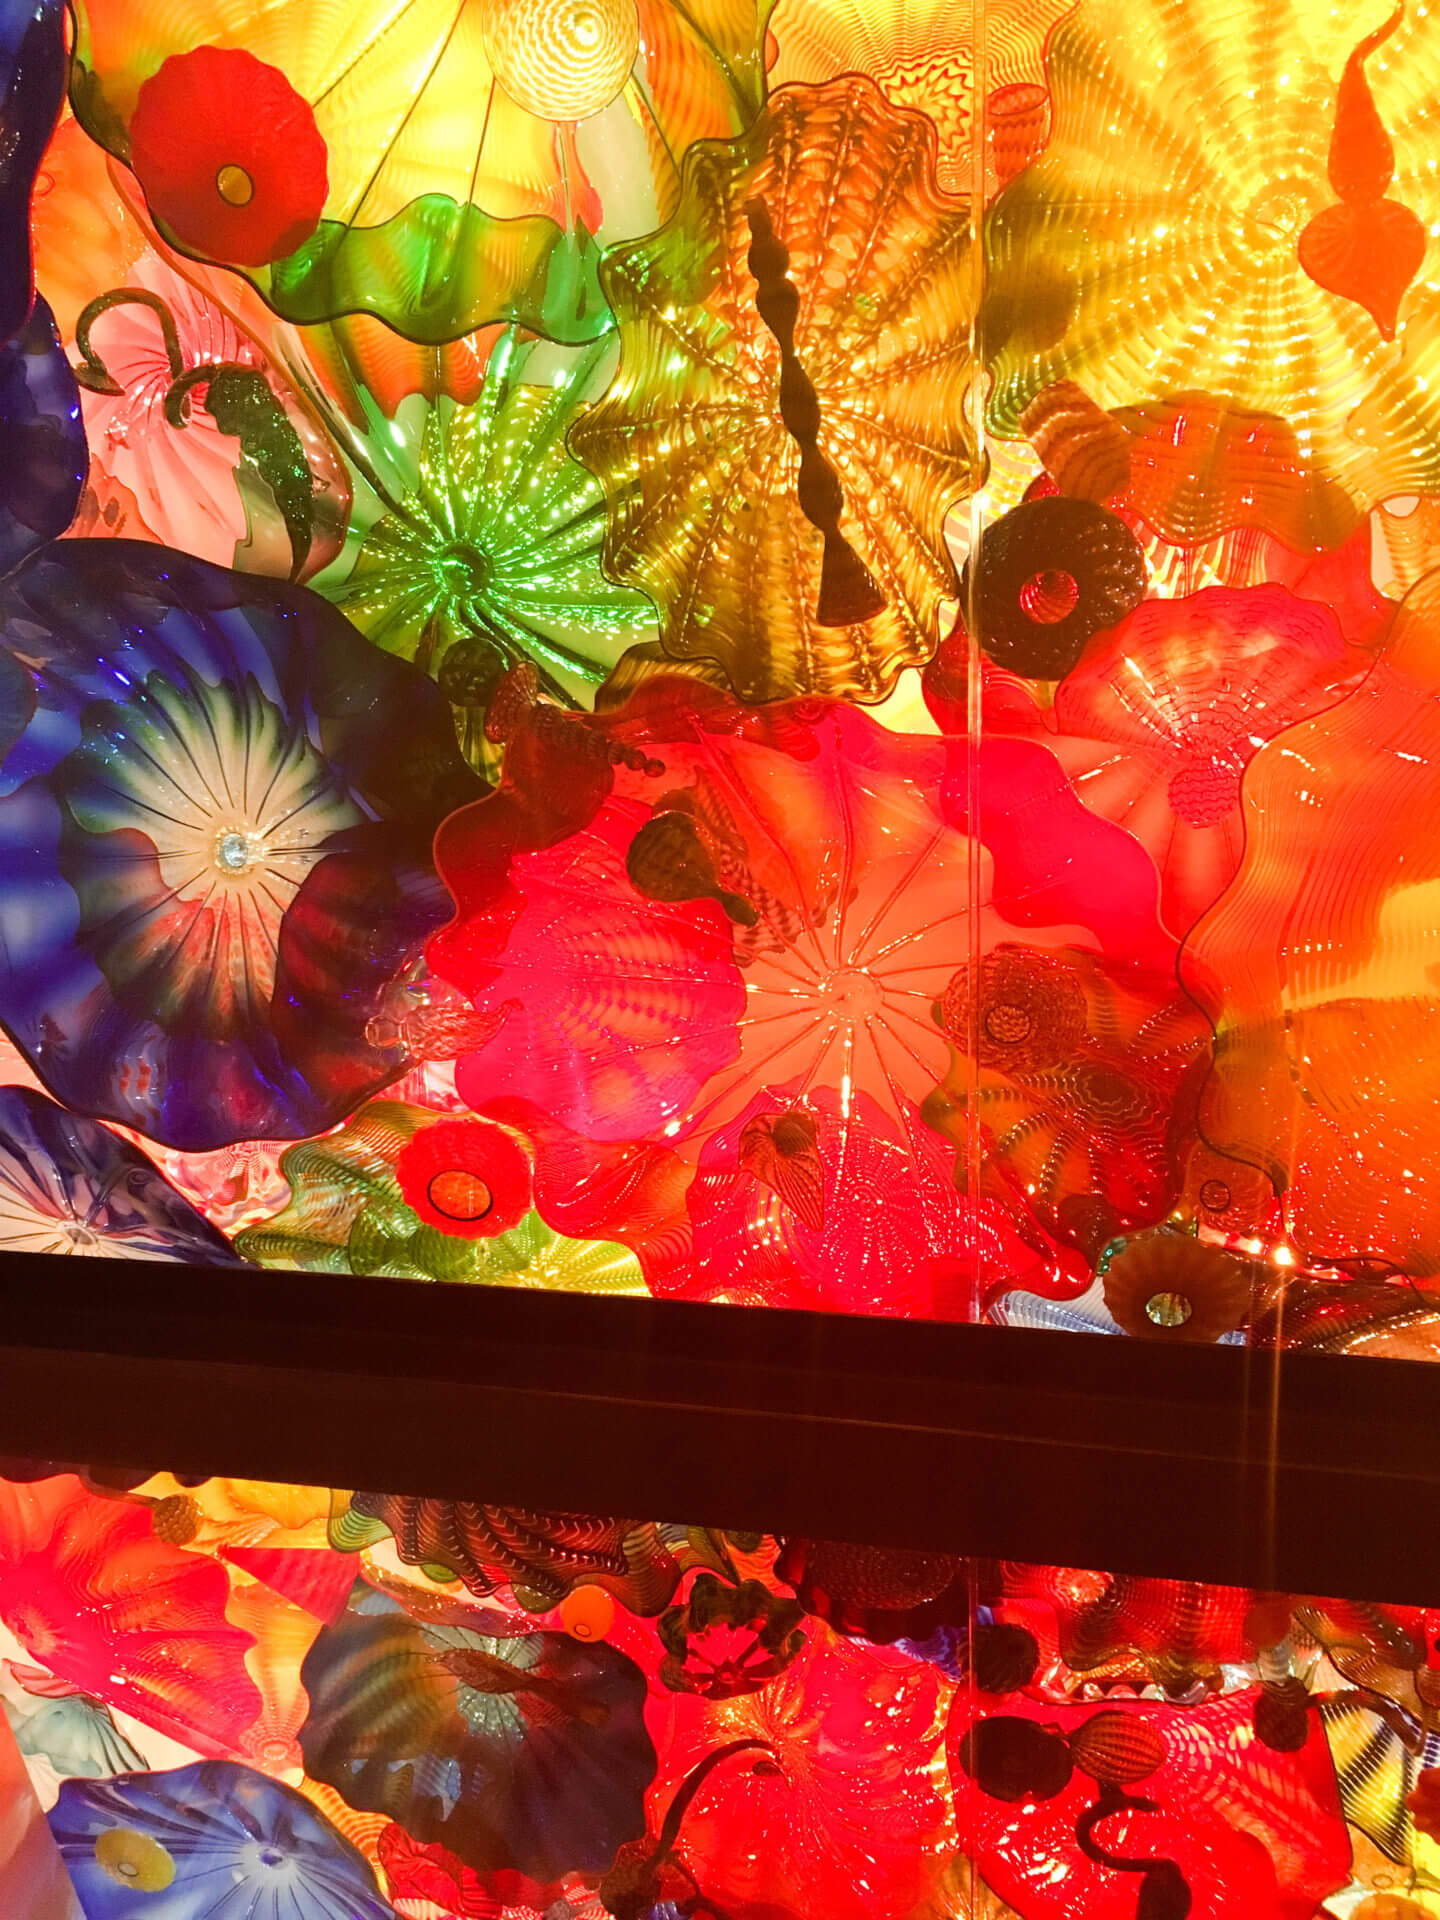 chihuly museum flowers